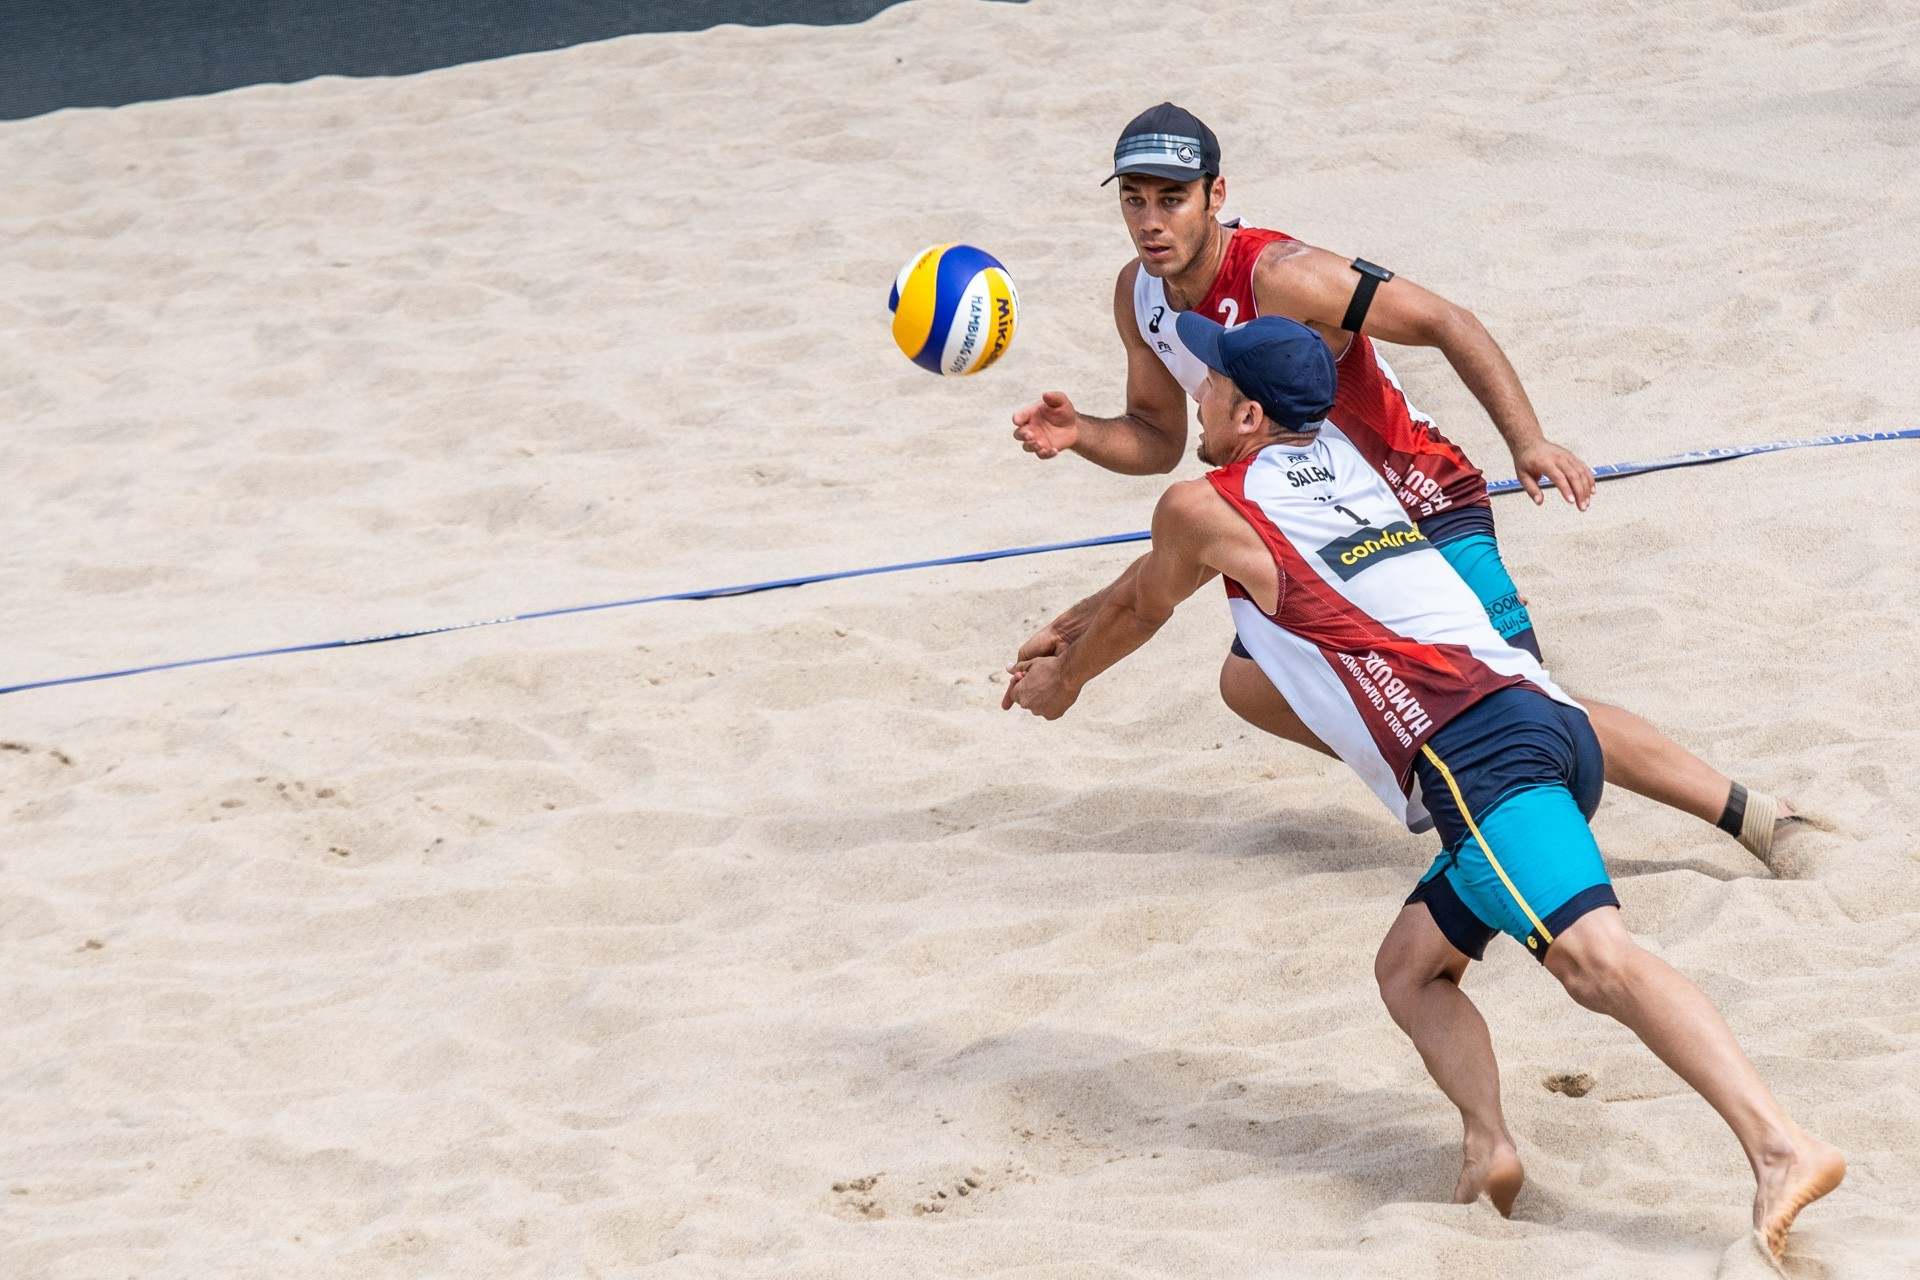 After playing at the World Championships, Vakili and Salemi represent Iran at the Continental Cup